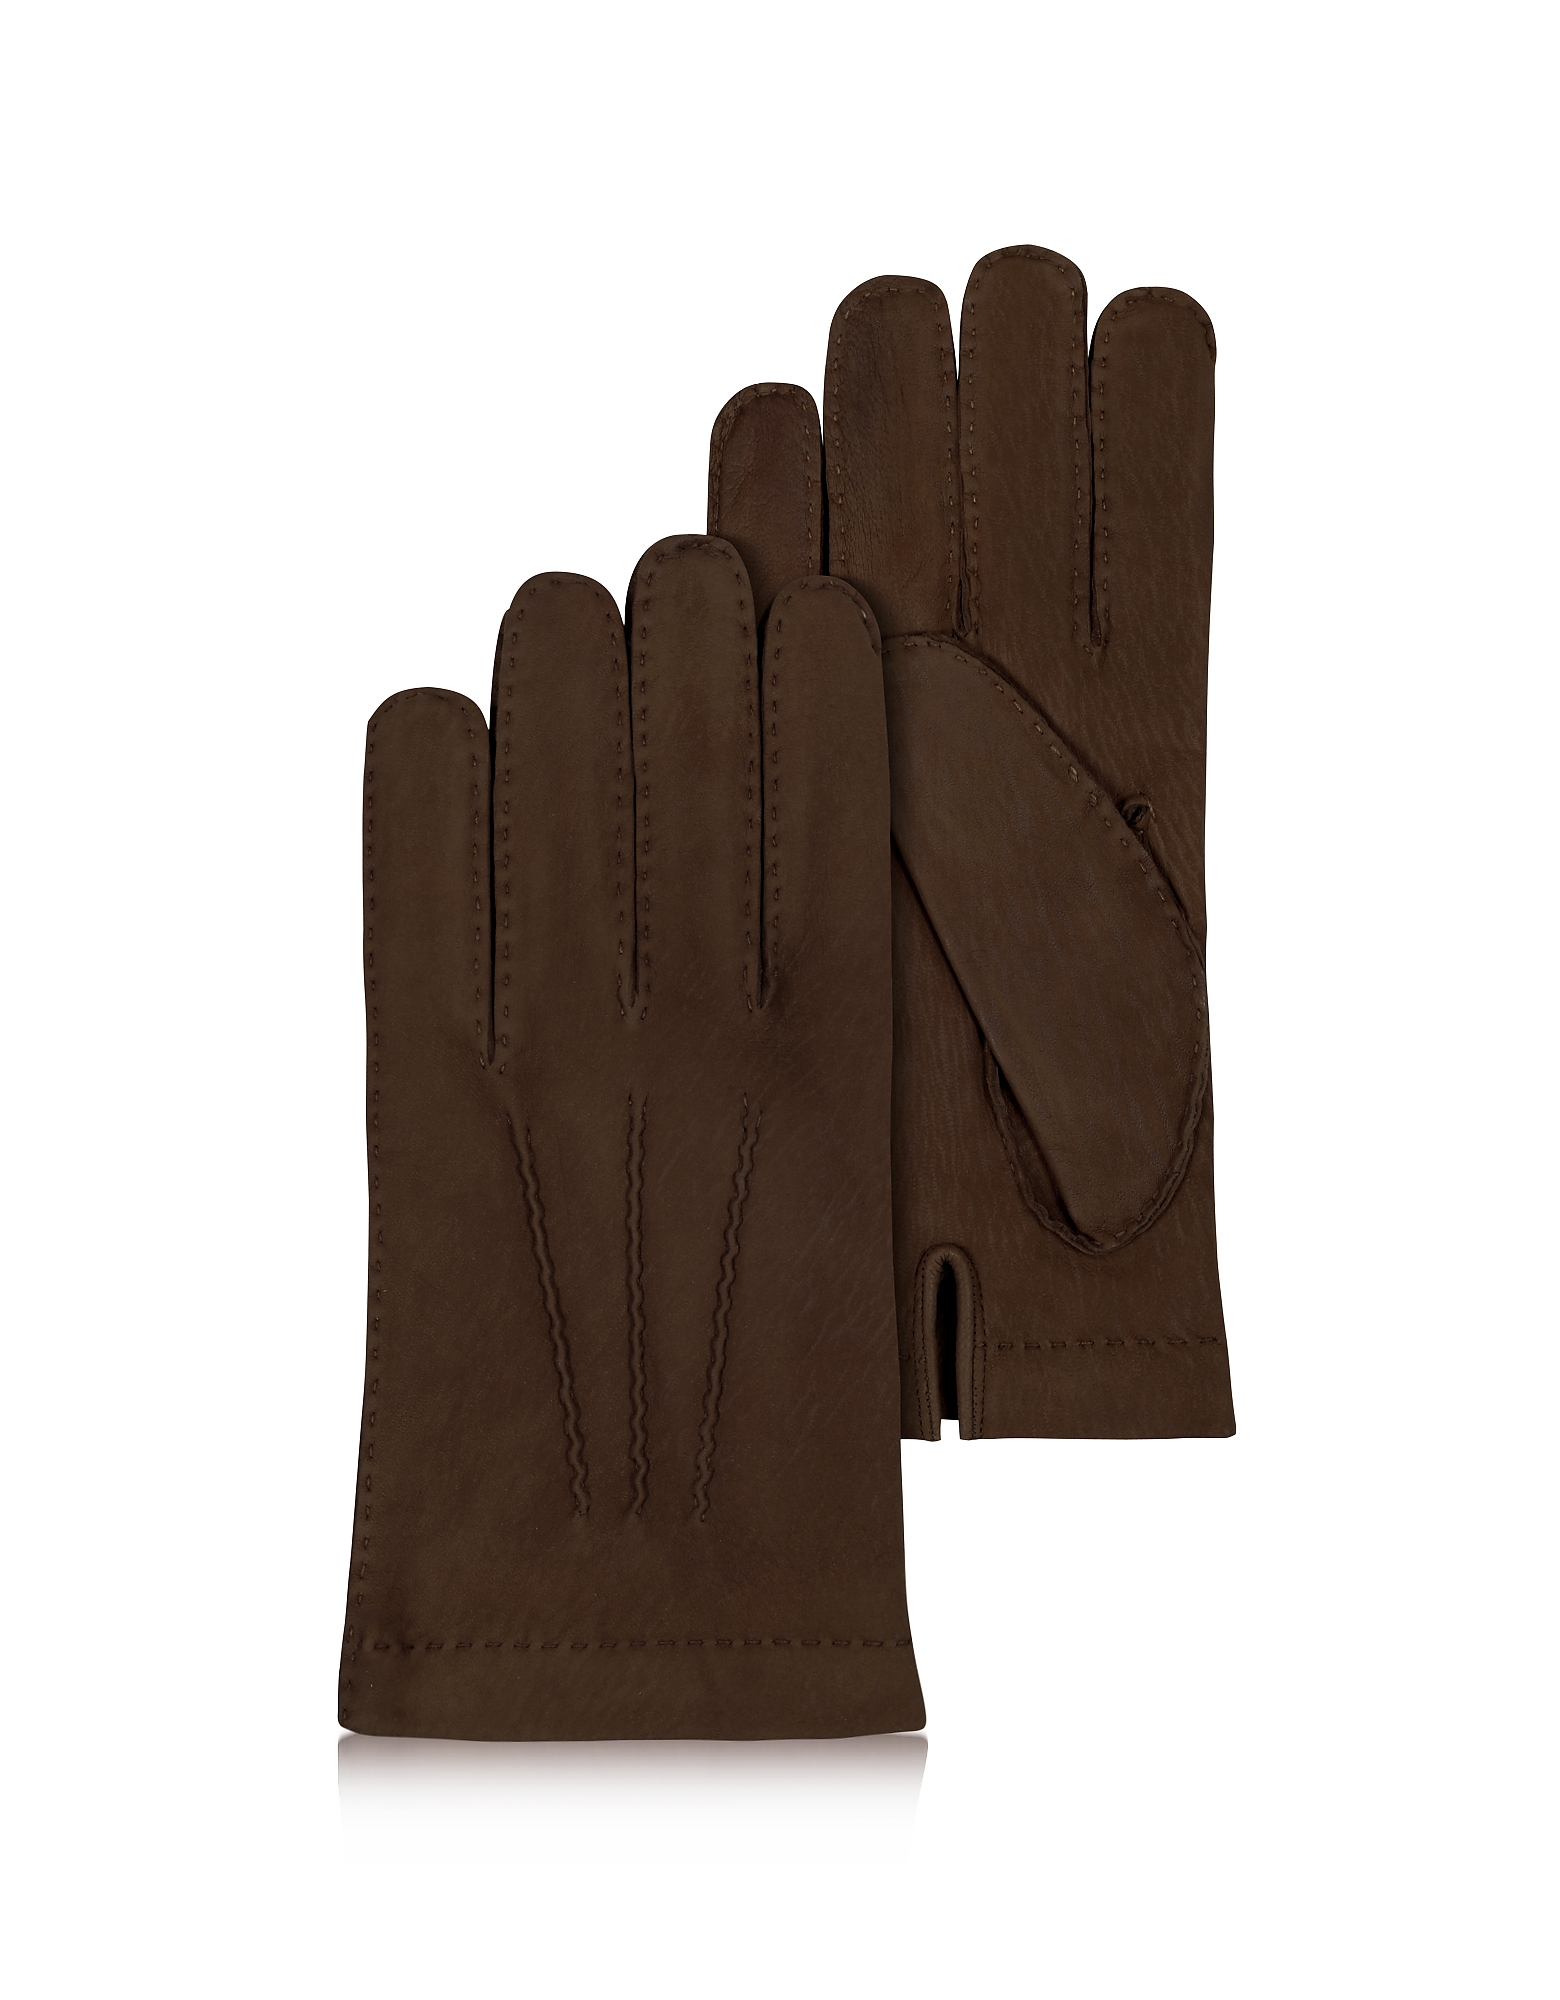 Forzieri Men's Gloves, Men's Cashmere Lined Dark Brown Italian Calf Leather Gloves